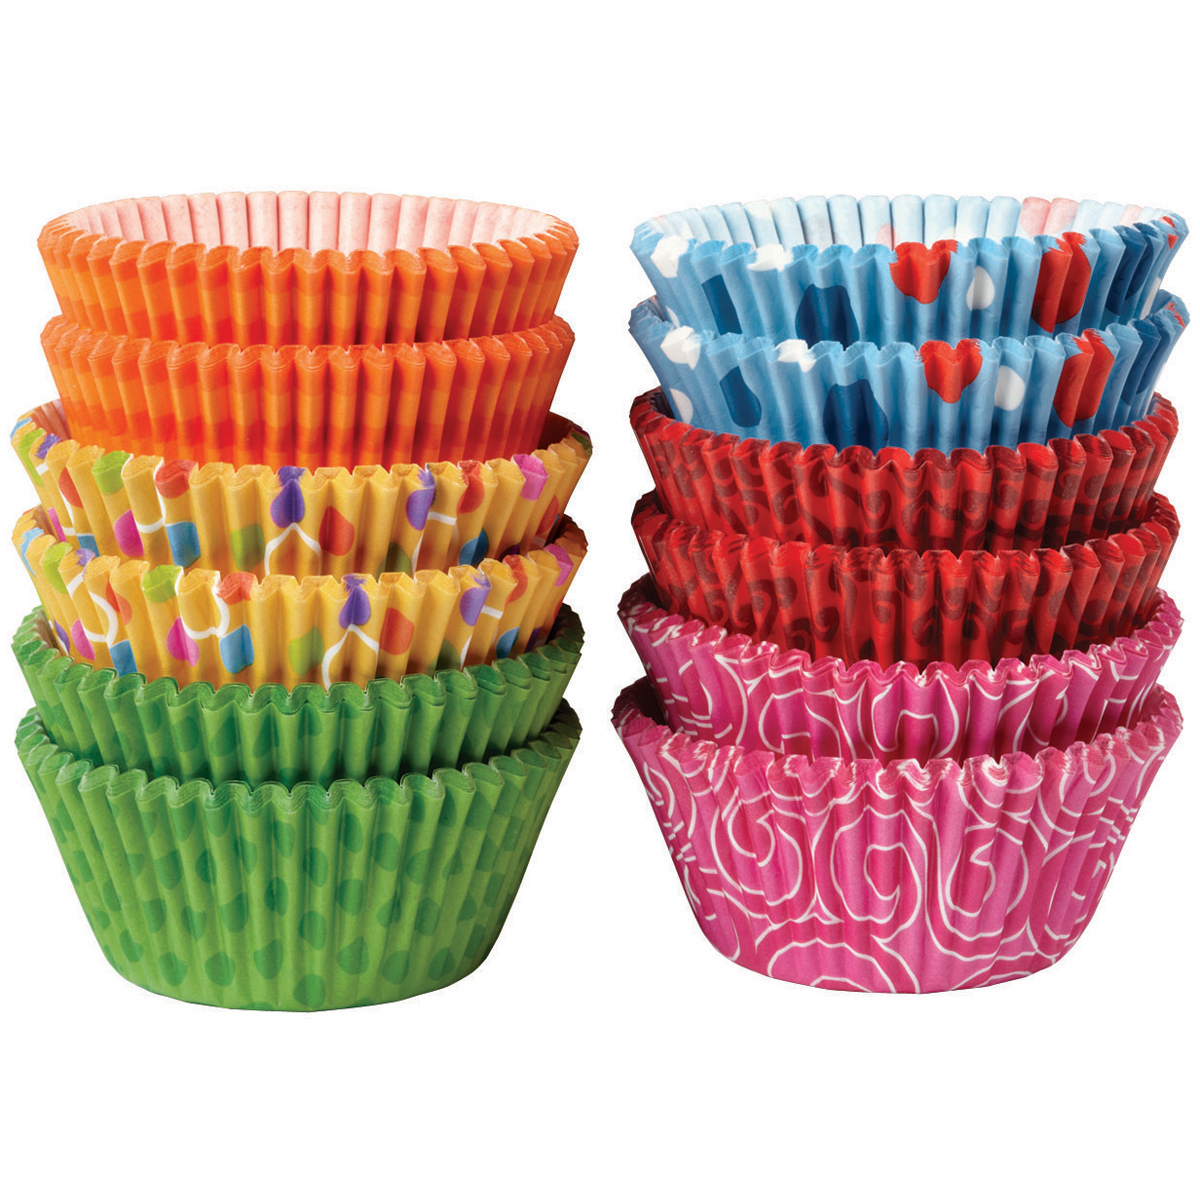 Seasons Standard Baking Cups 300ct